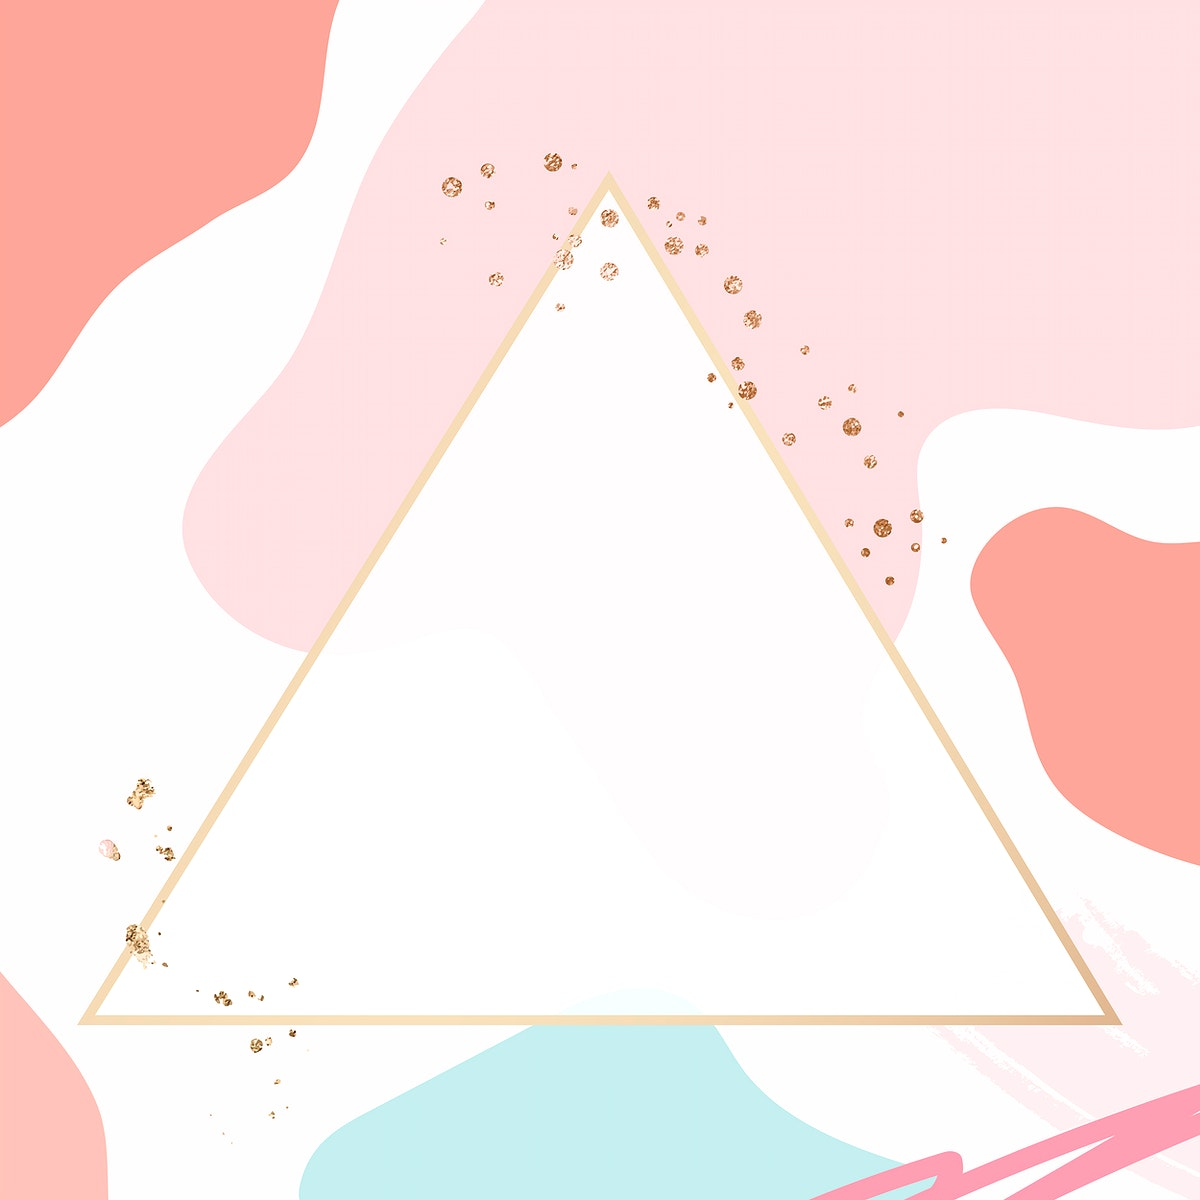 Triangle gold frame on colorful Memphis pattern background vector